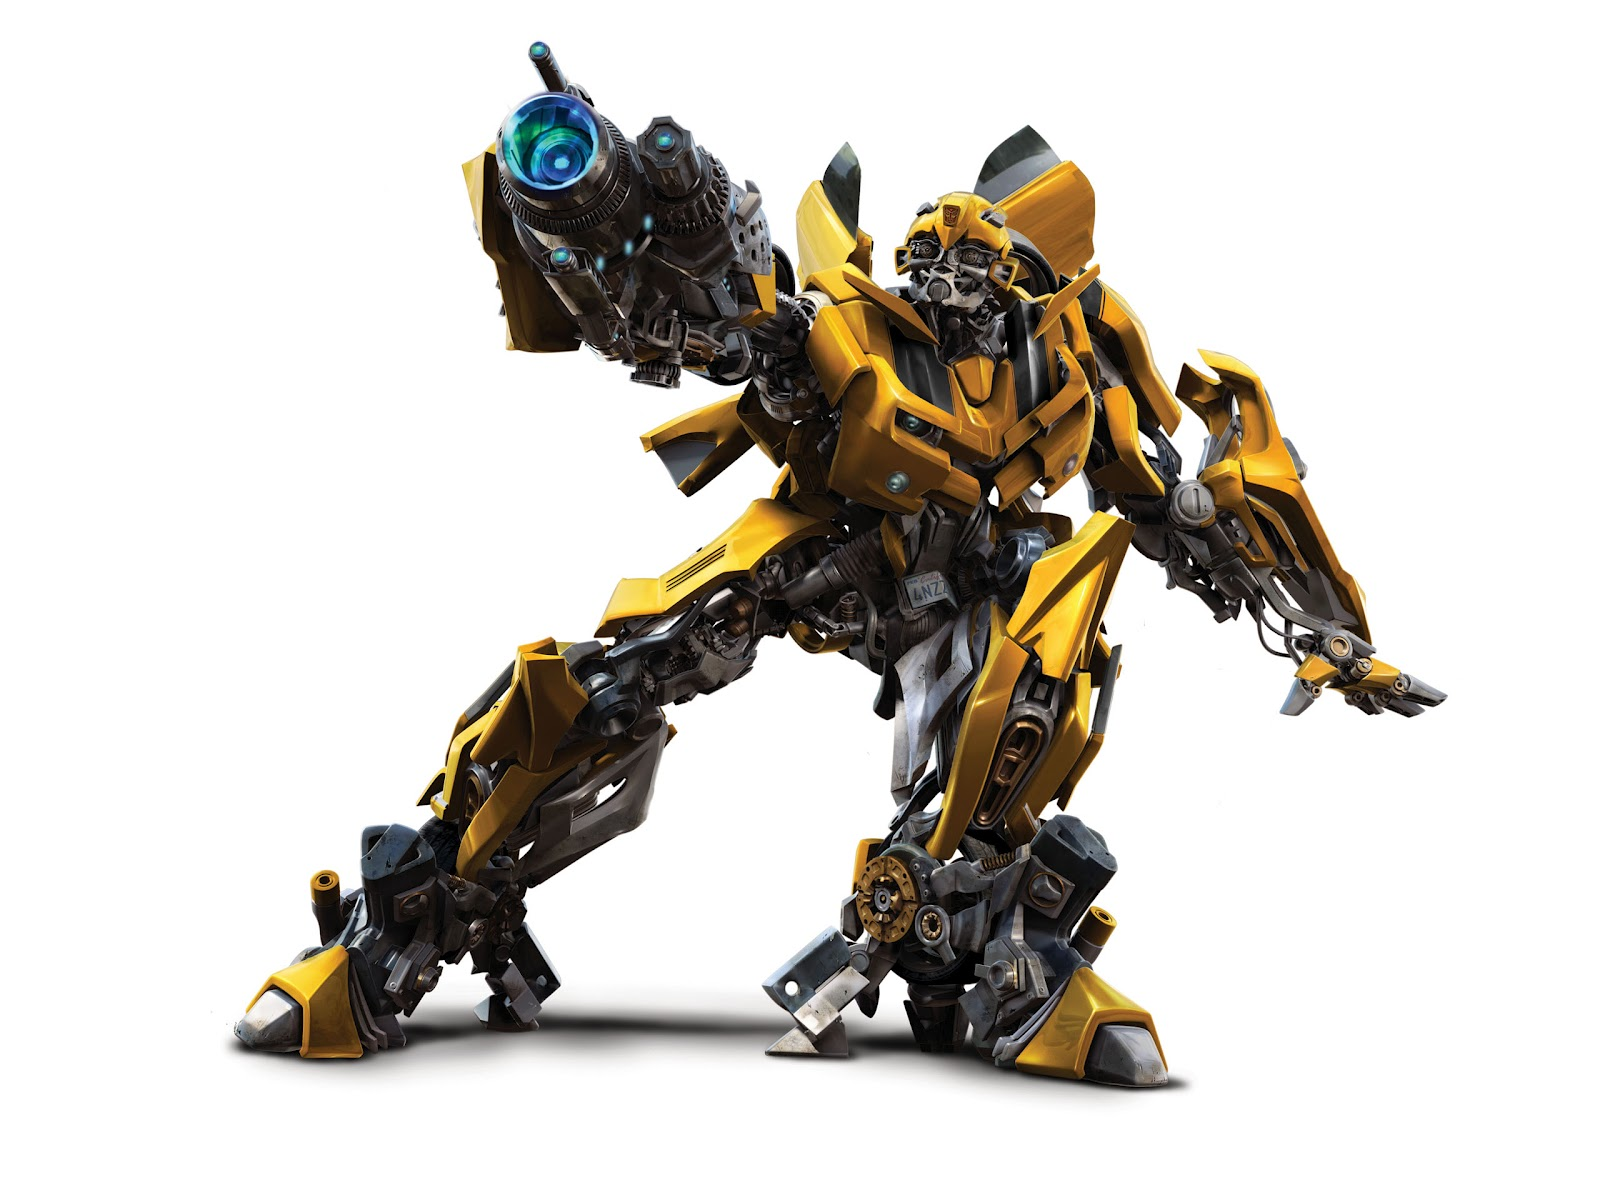 bumblebee in new transformers wallpapers - HD Transformers Wallpapers & Backgrounds For Free